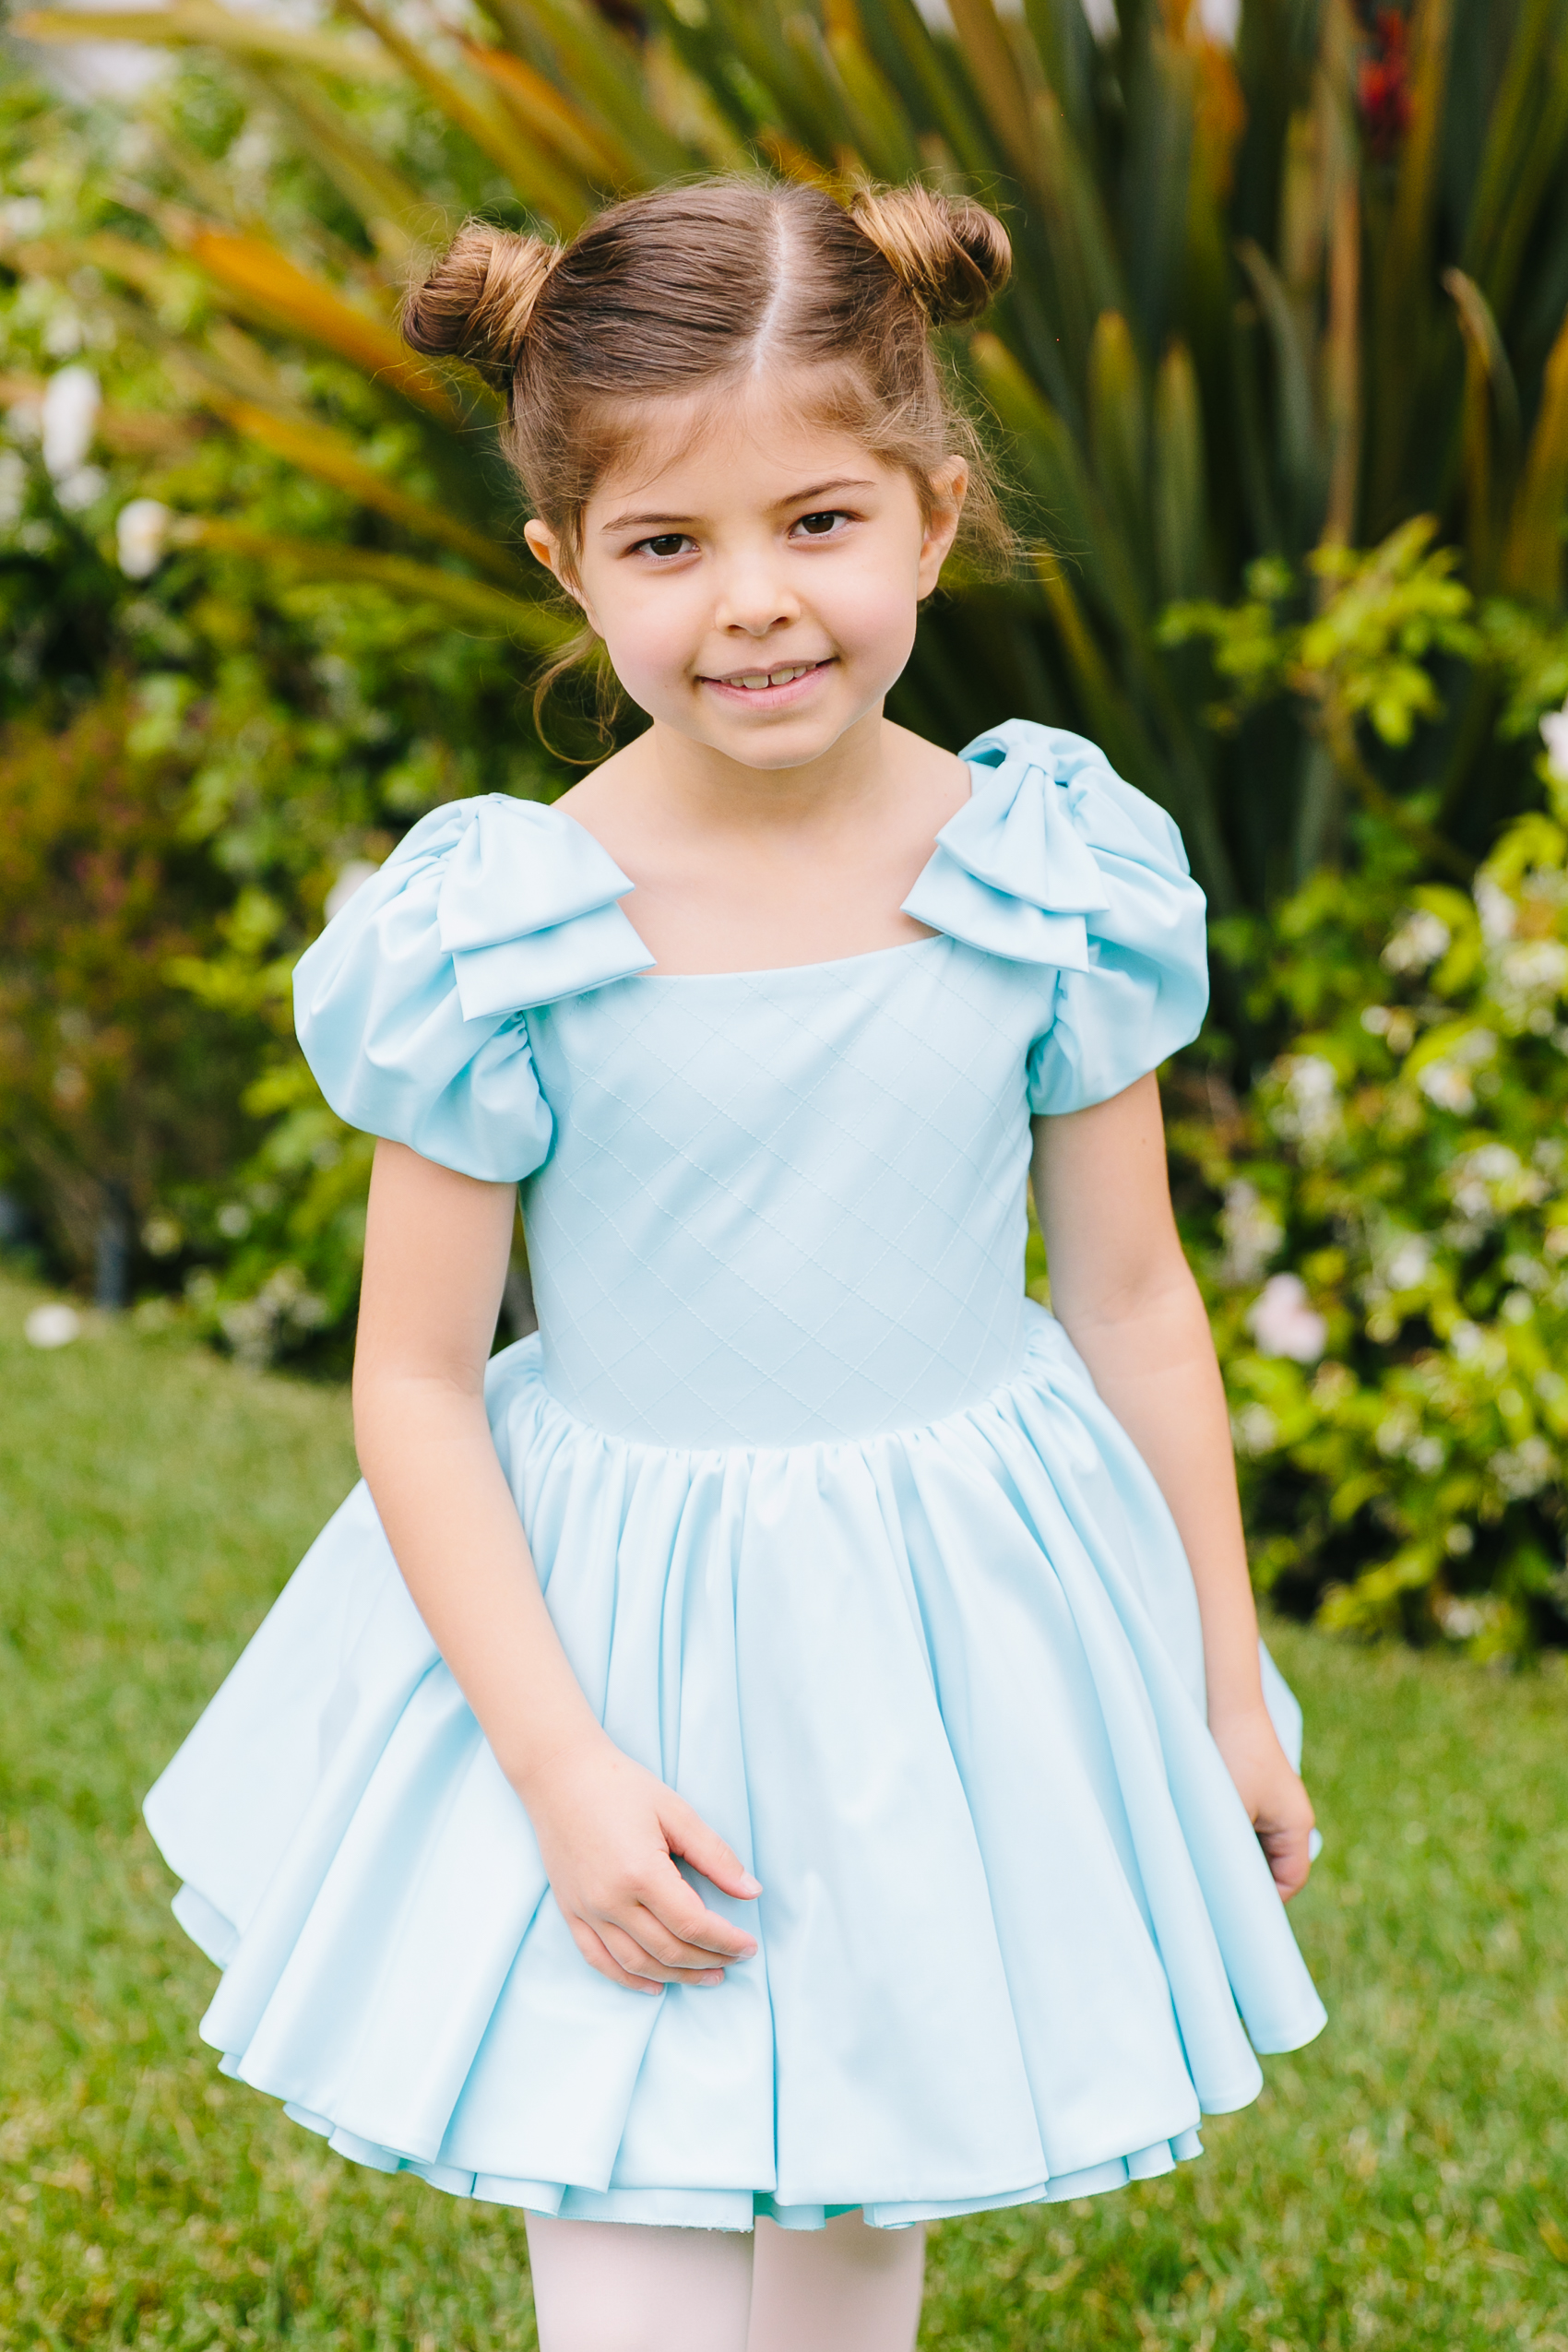 Los_Angeles_Family_Photographer_Luxury_Childrens_Party_Beverly_Hills_Unicorn_Birthday_Party-0209.jpg